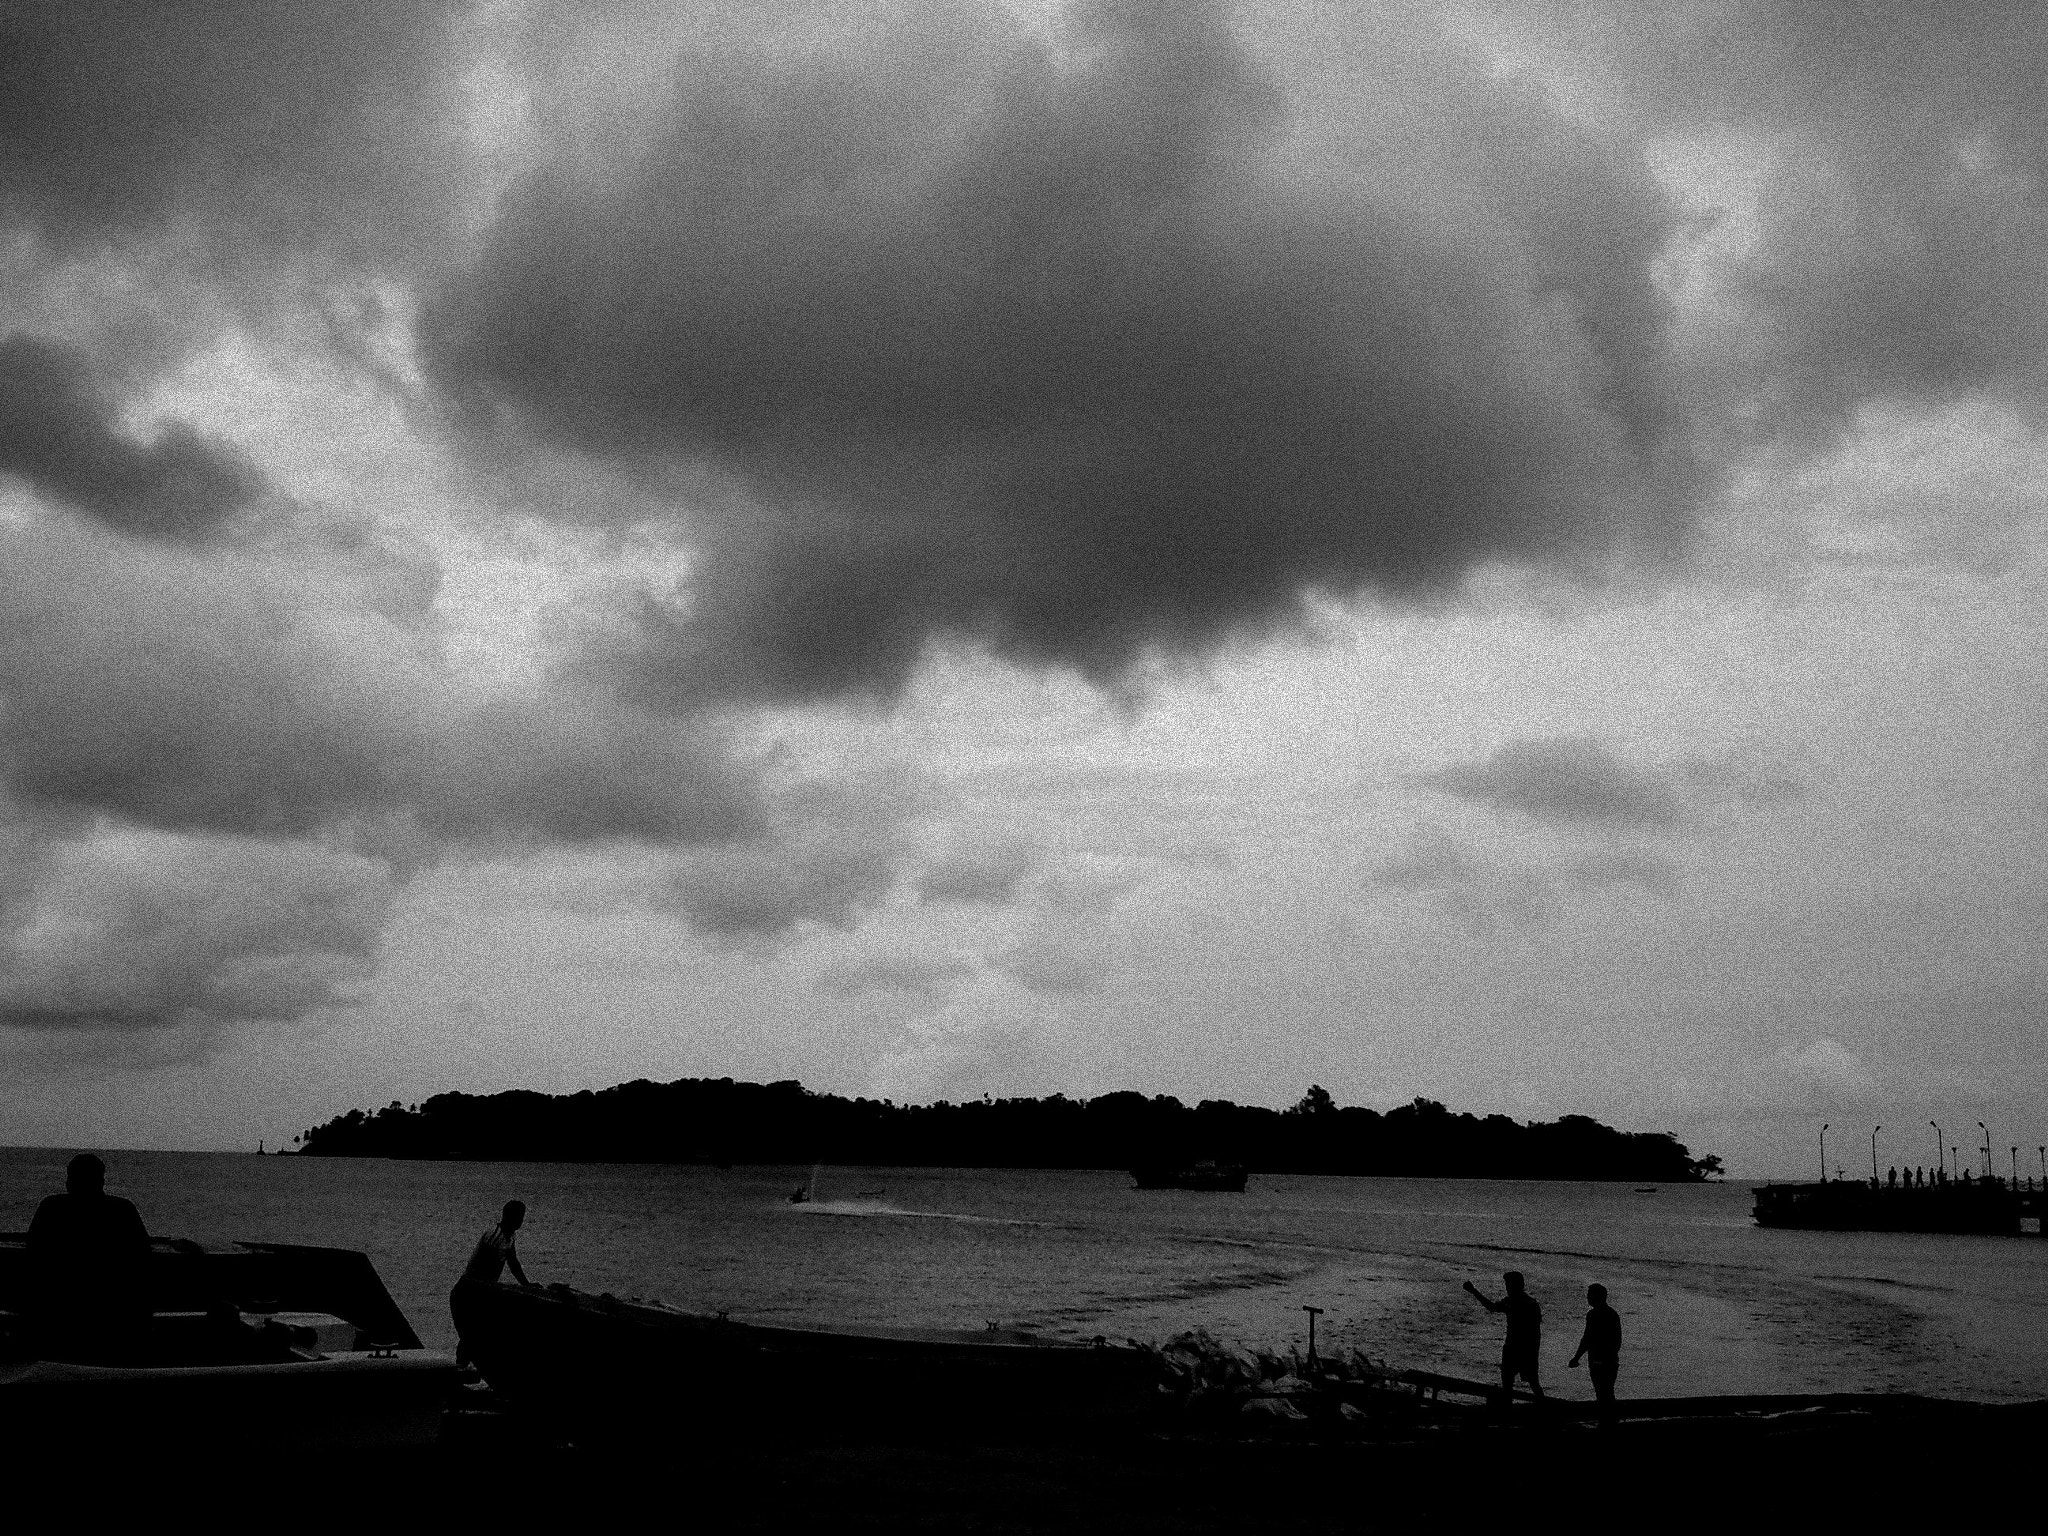 Photograph The Unknown Island by Tanuj Rohatgi on 500px